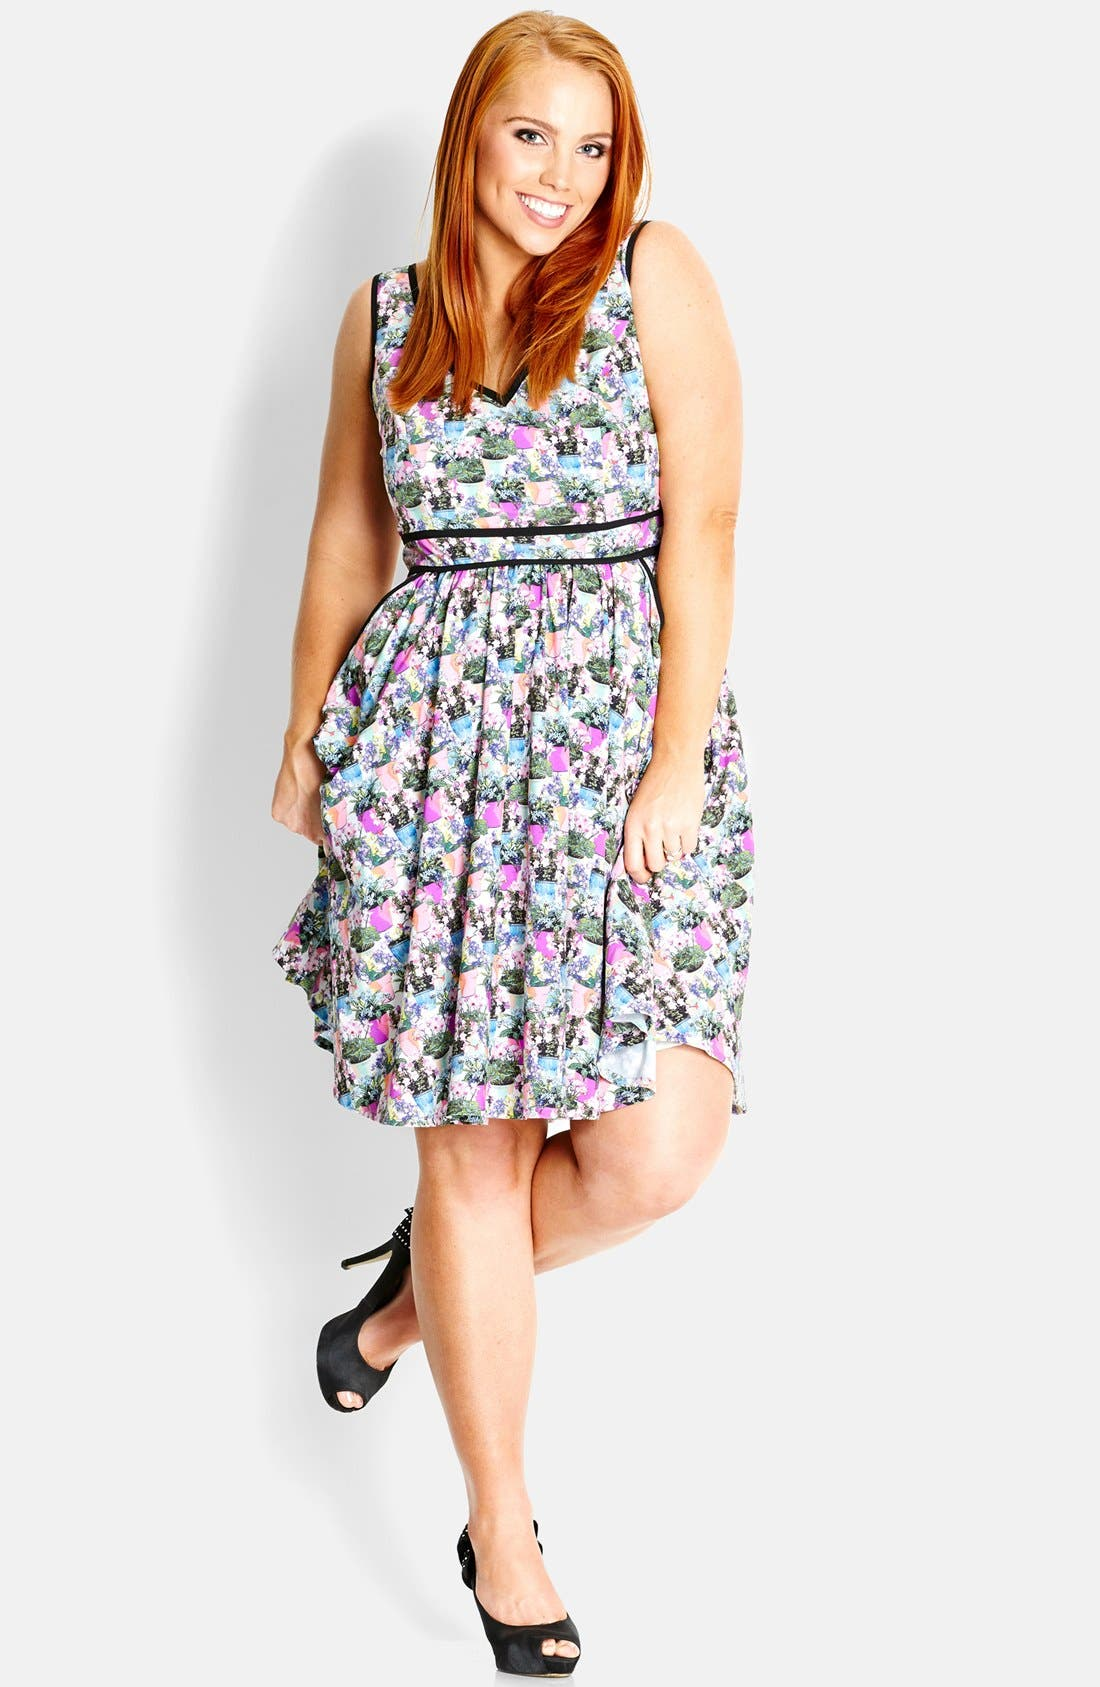 Alternate Image 1 Selected - City Chic 'Miss Flowerpot' Fit & Flare Dress (Plus Size)